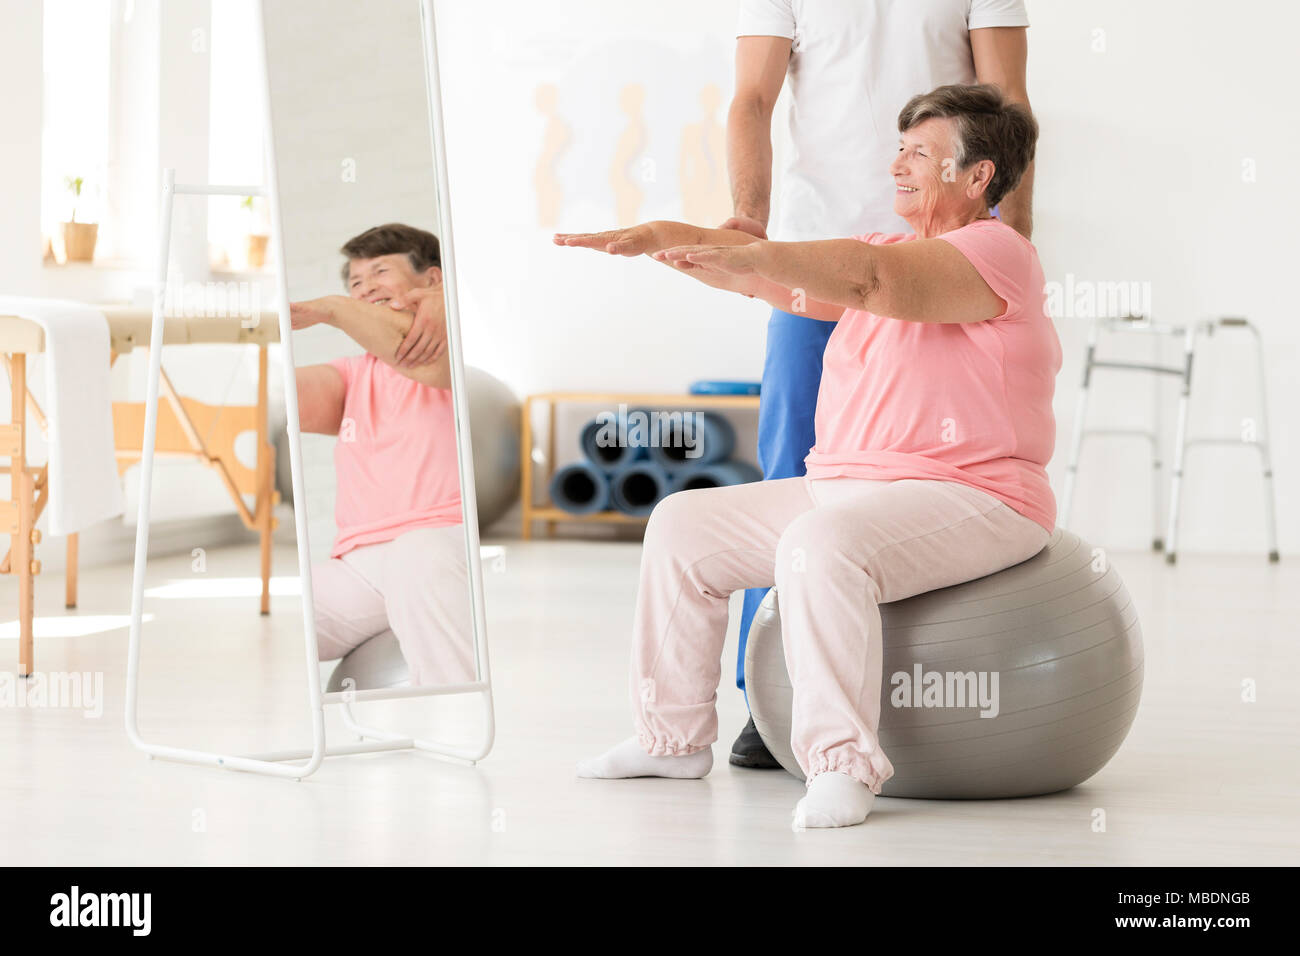 Smiling senior exercising with a physiotherapist on a silver ball at a white gym - Stock Image